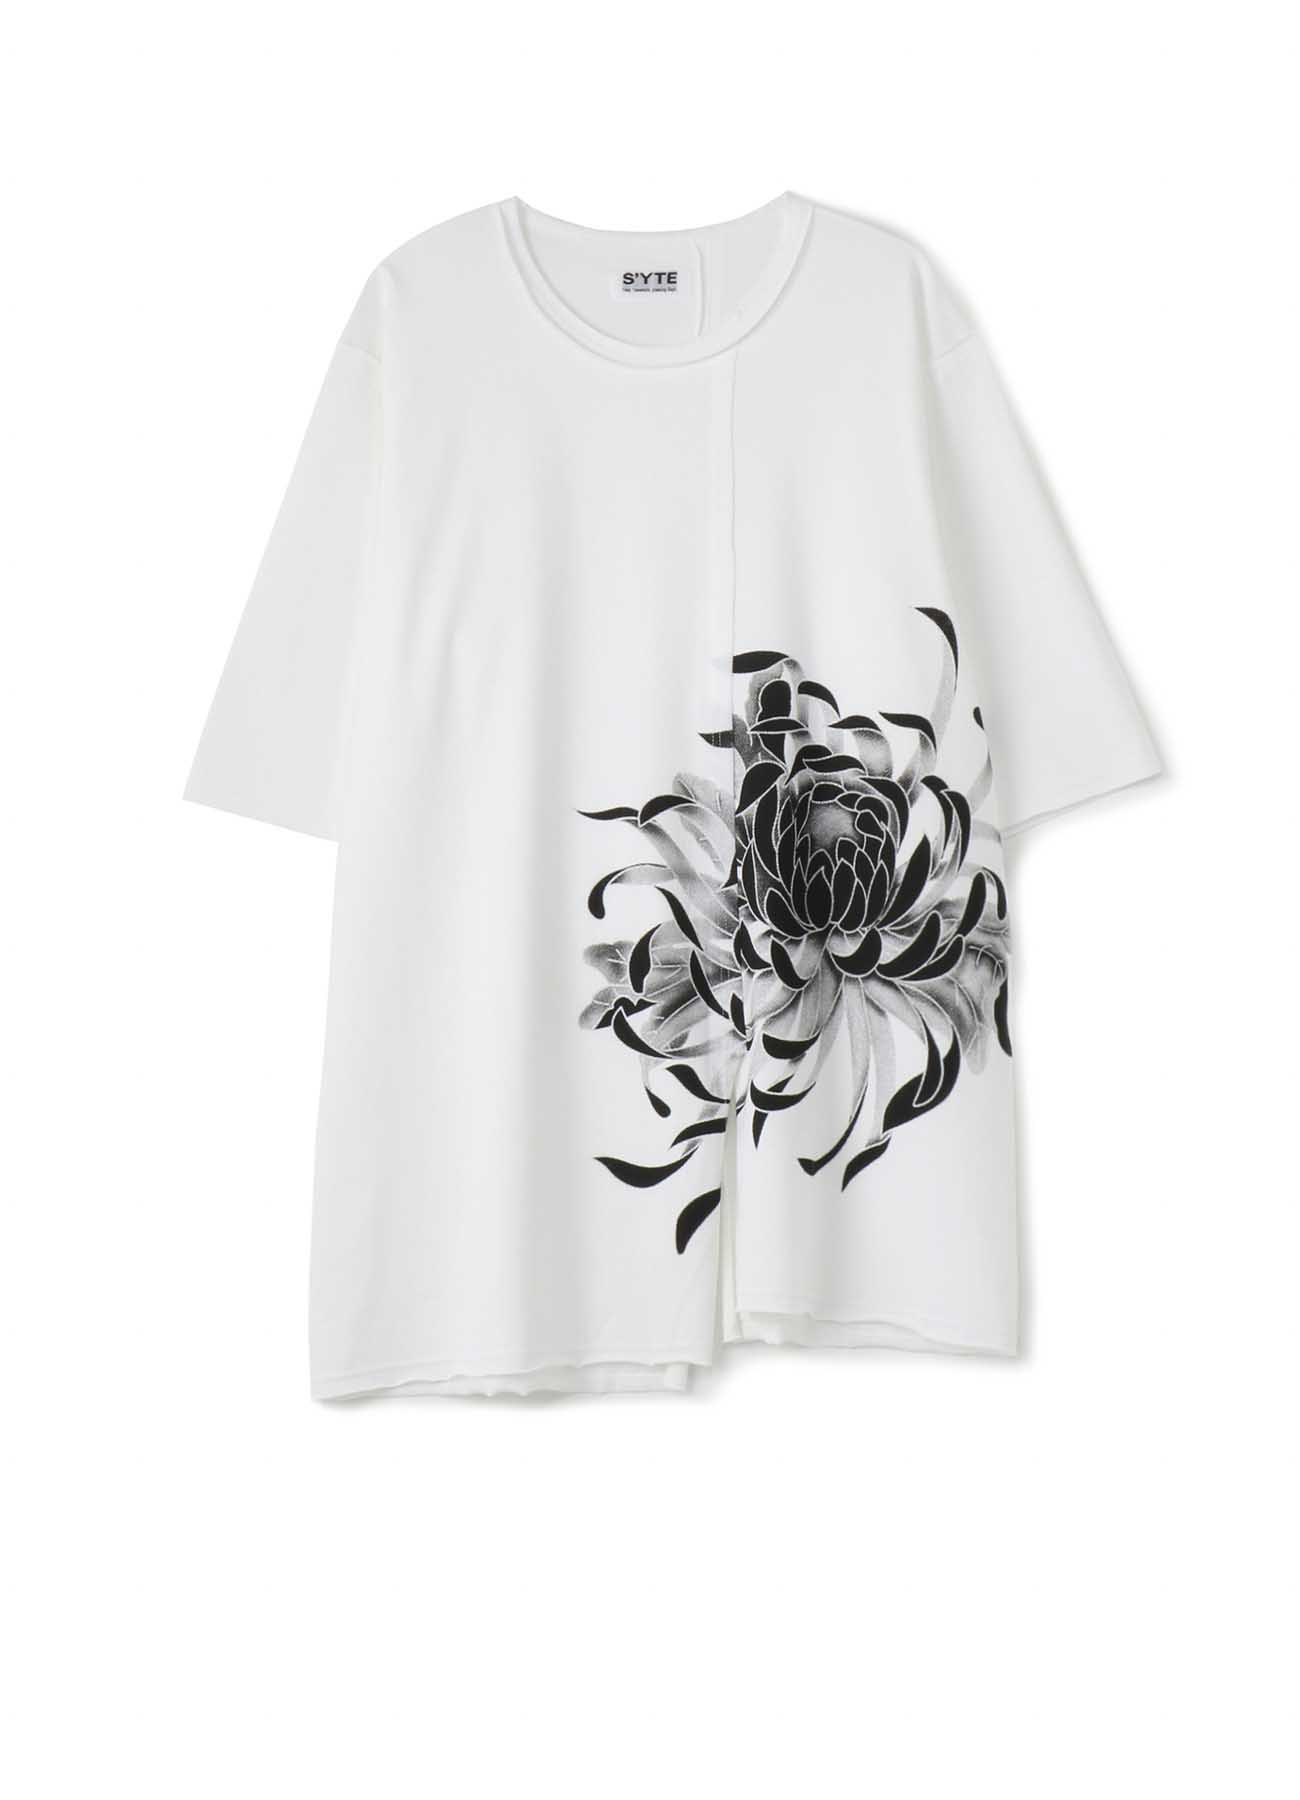 40/2 Cotton Jersey Stitching Slit Big Flower T- shirt